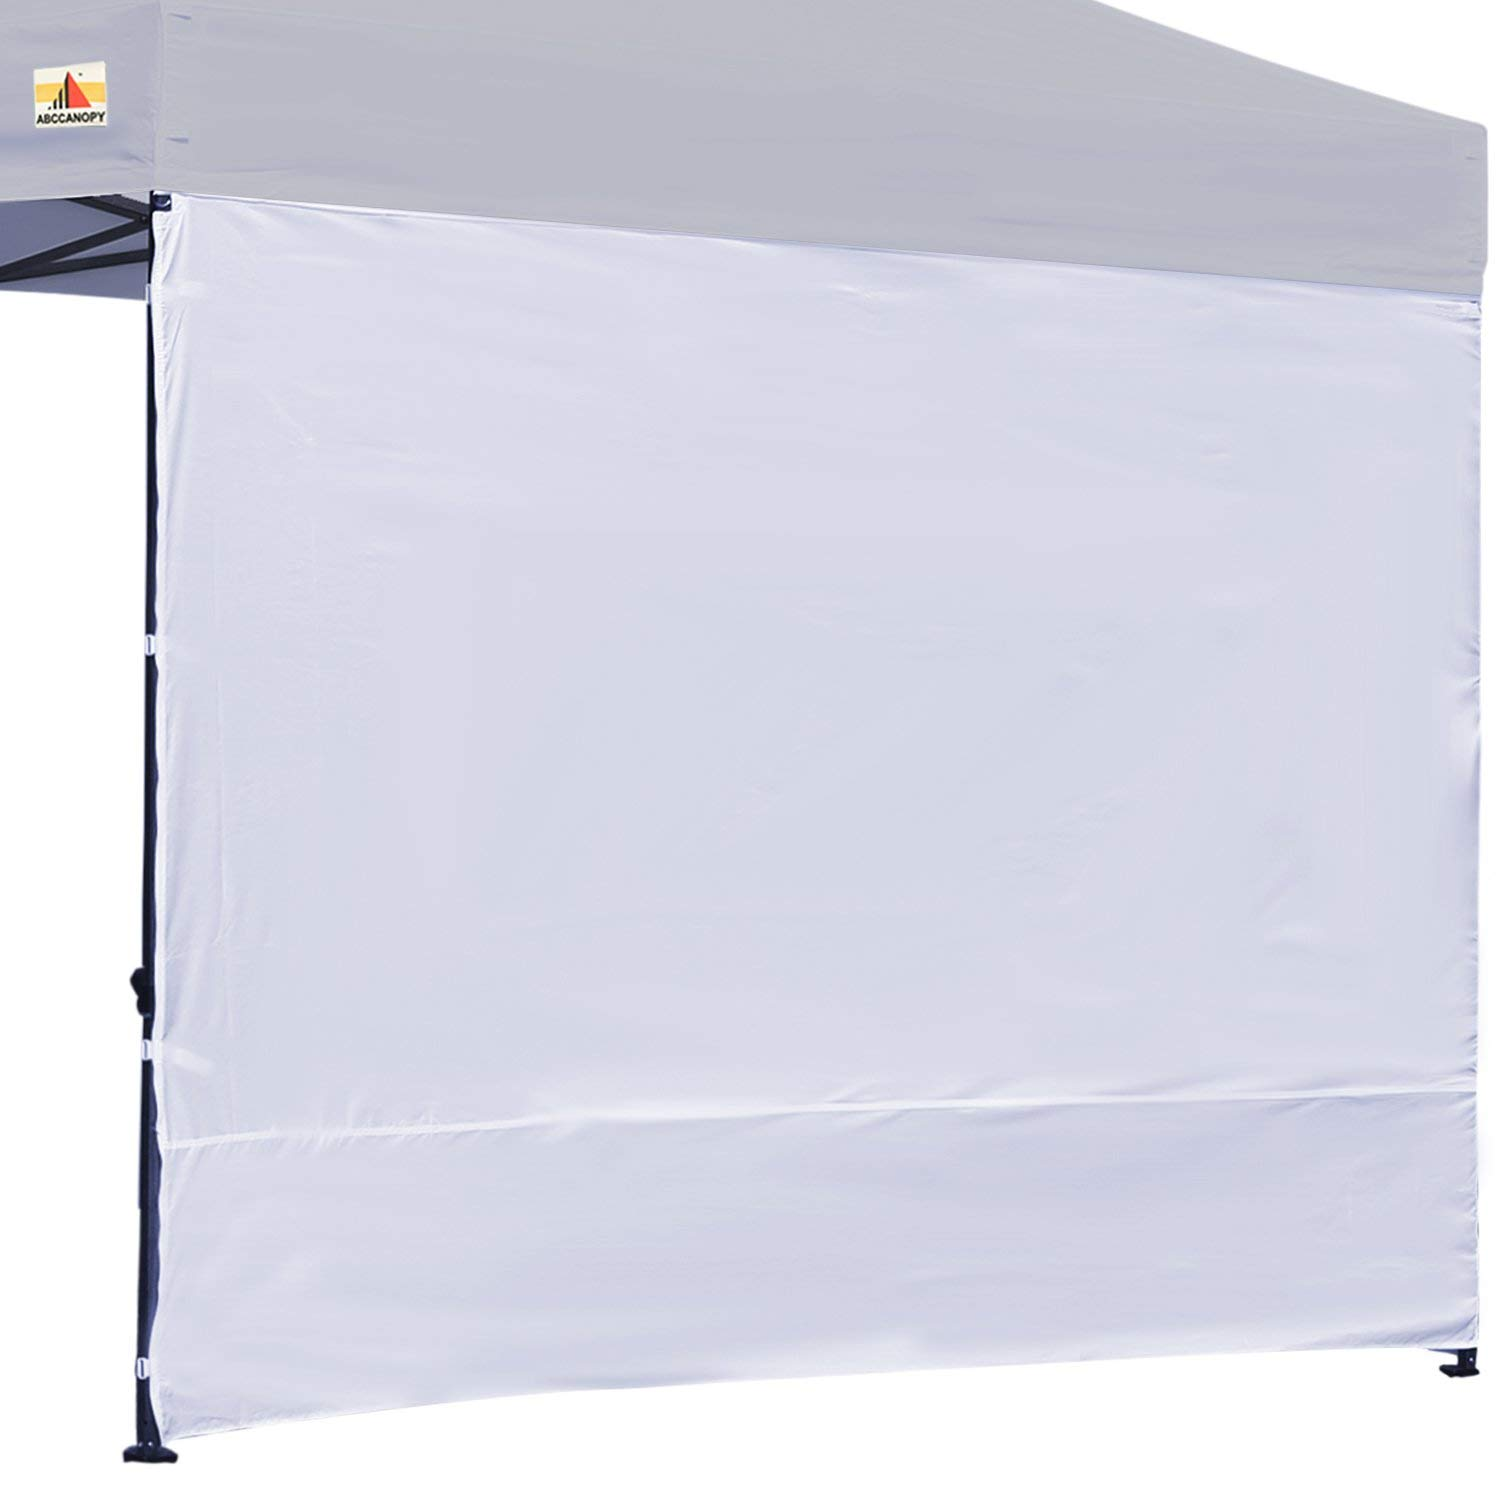 ABCCANOPY Instant Canopy Sunwall 15+ colors for 10 by 10ft, 10 by 10 feet straight